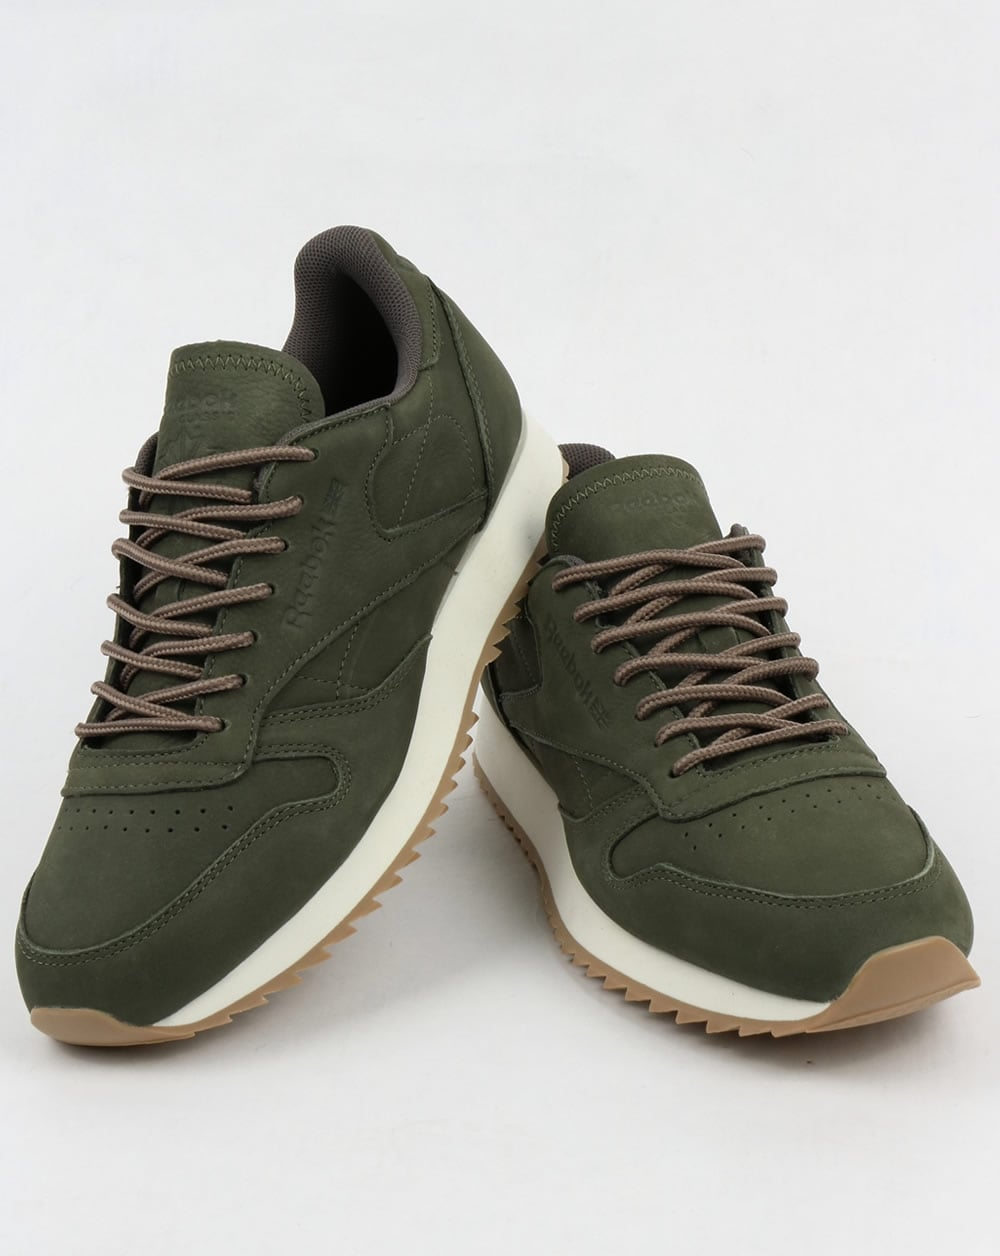 71fb37a5d50 Reebok Classic Leather Ripple Trainers Hunter Green Grey